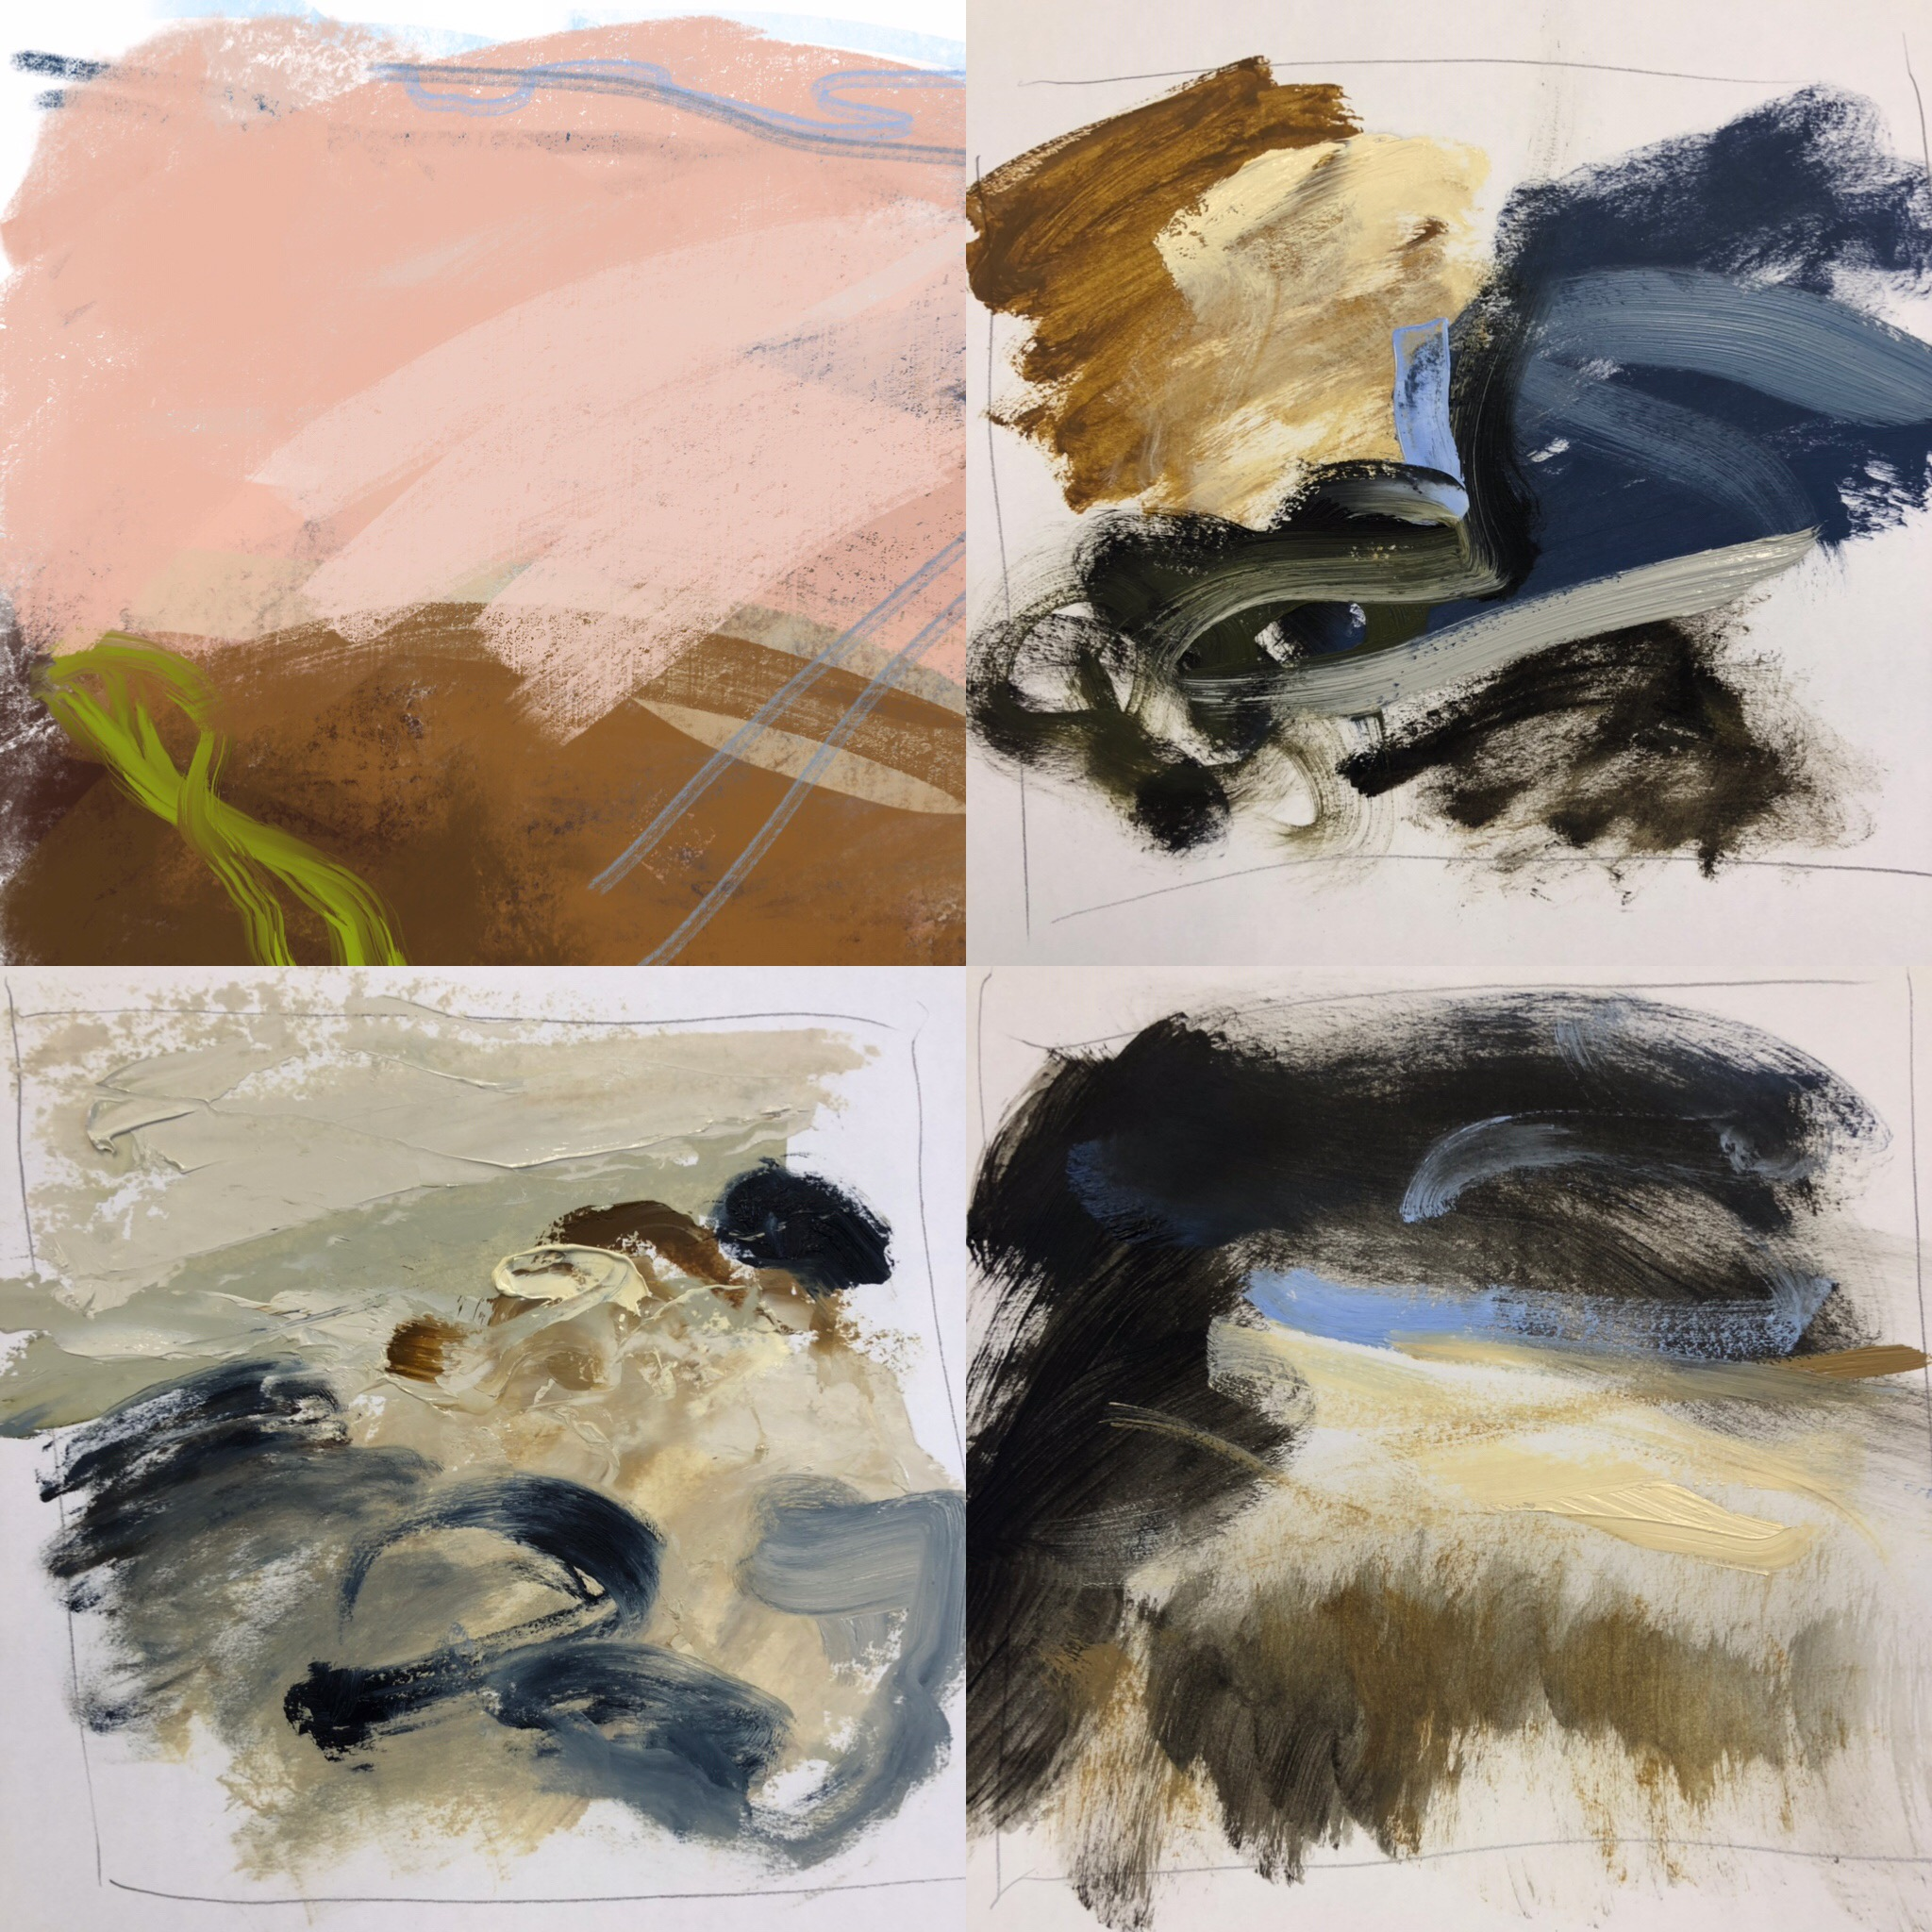 From left top - digital sketch and oil on paper - South Downs